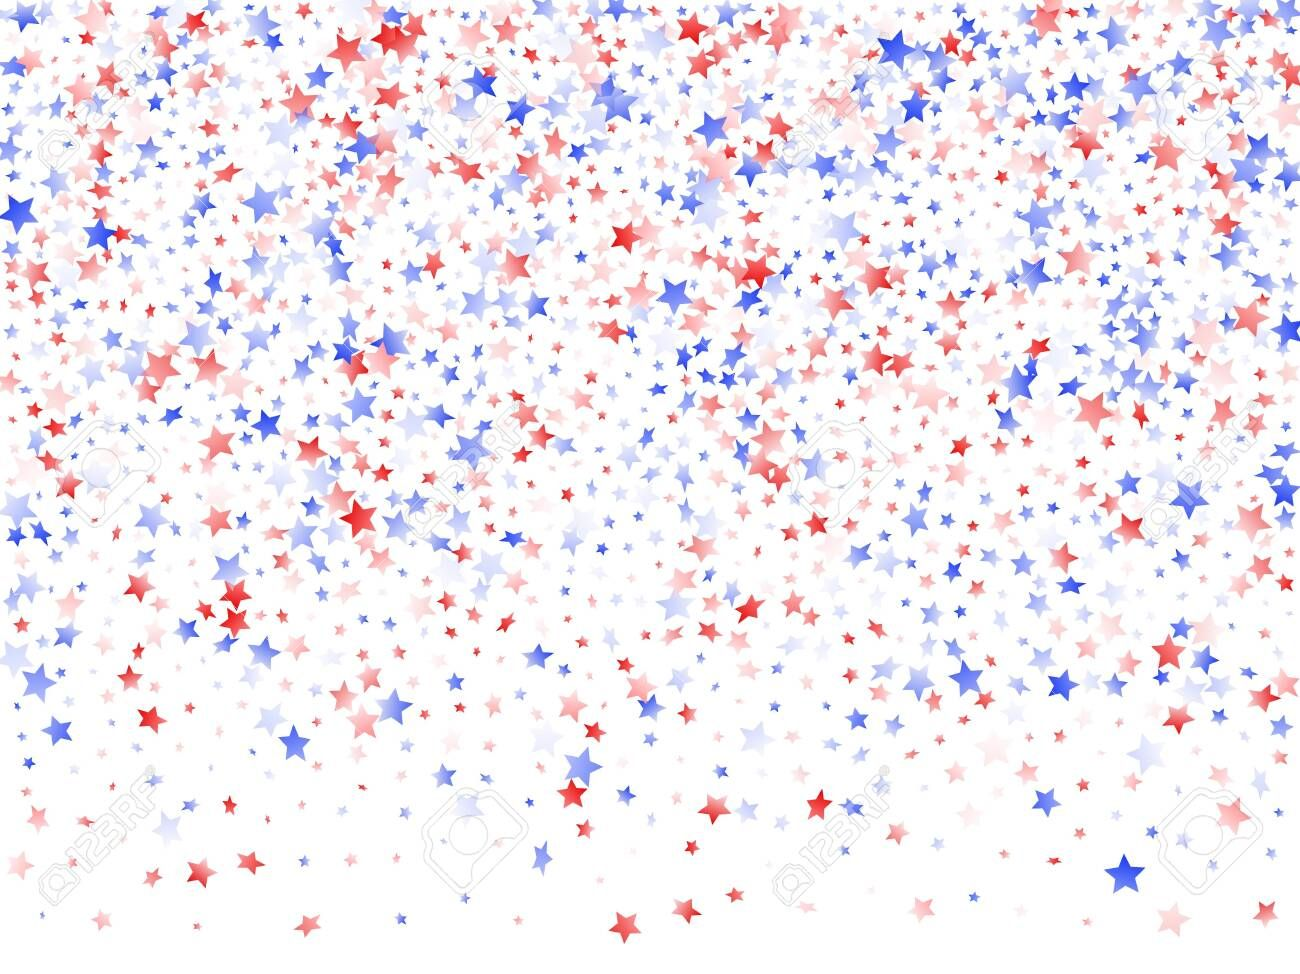 American Memorial Day Stars Background Confetti In Us Flag Colors For Independence Day Simple Red Blue White Red And Blue Patriotic Background Red White Blue